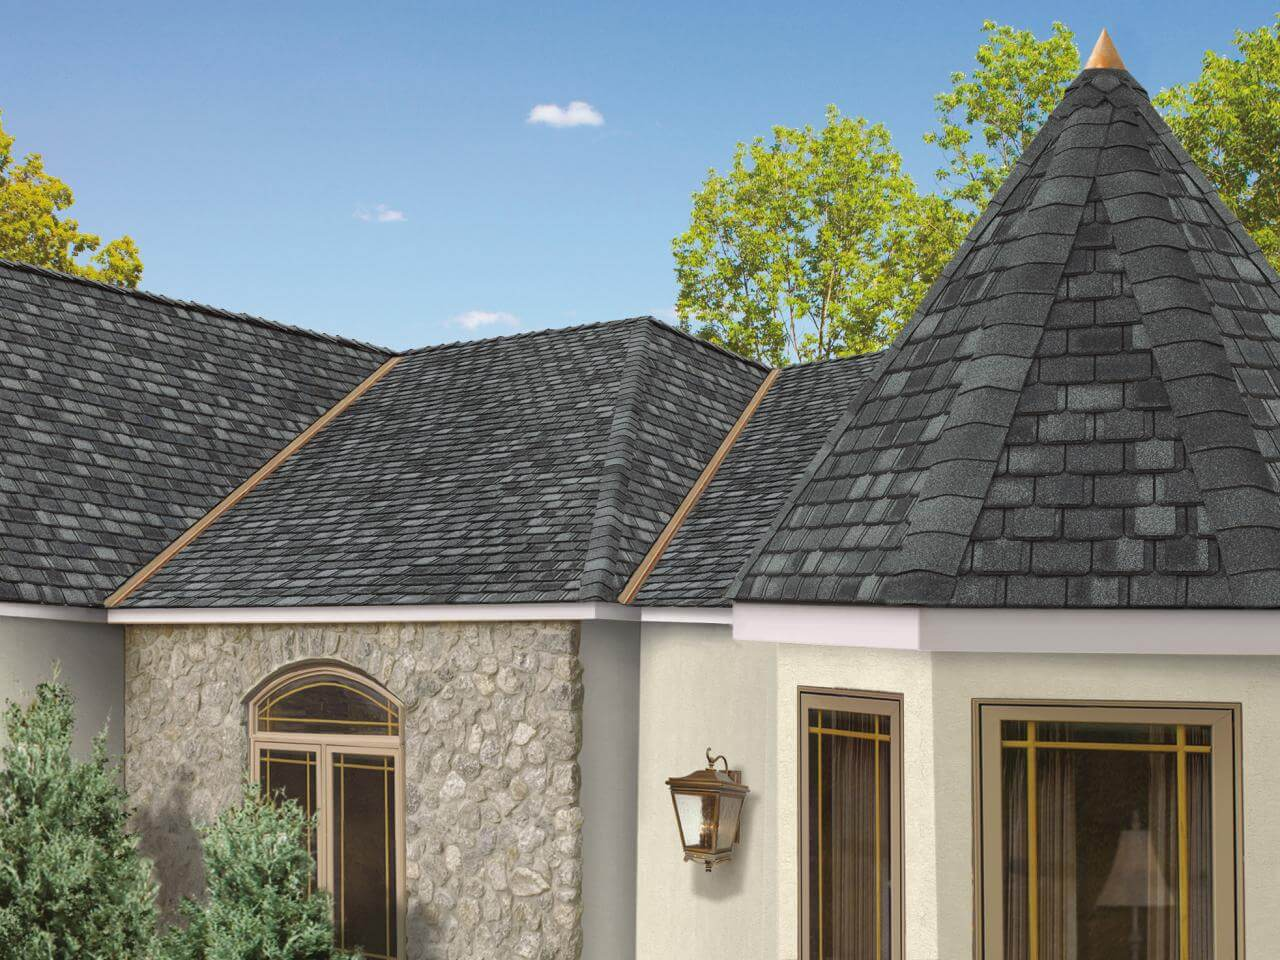 The roofing is important for any structure